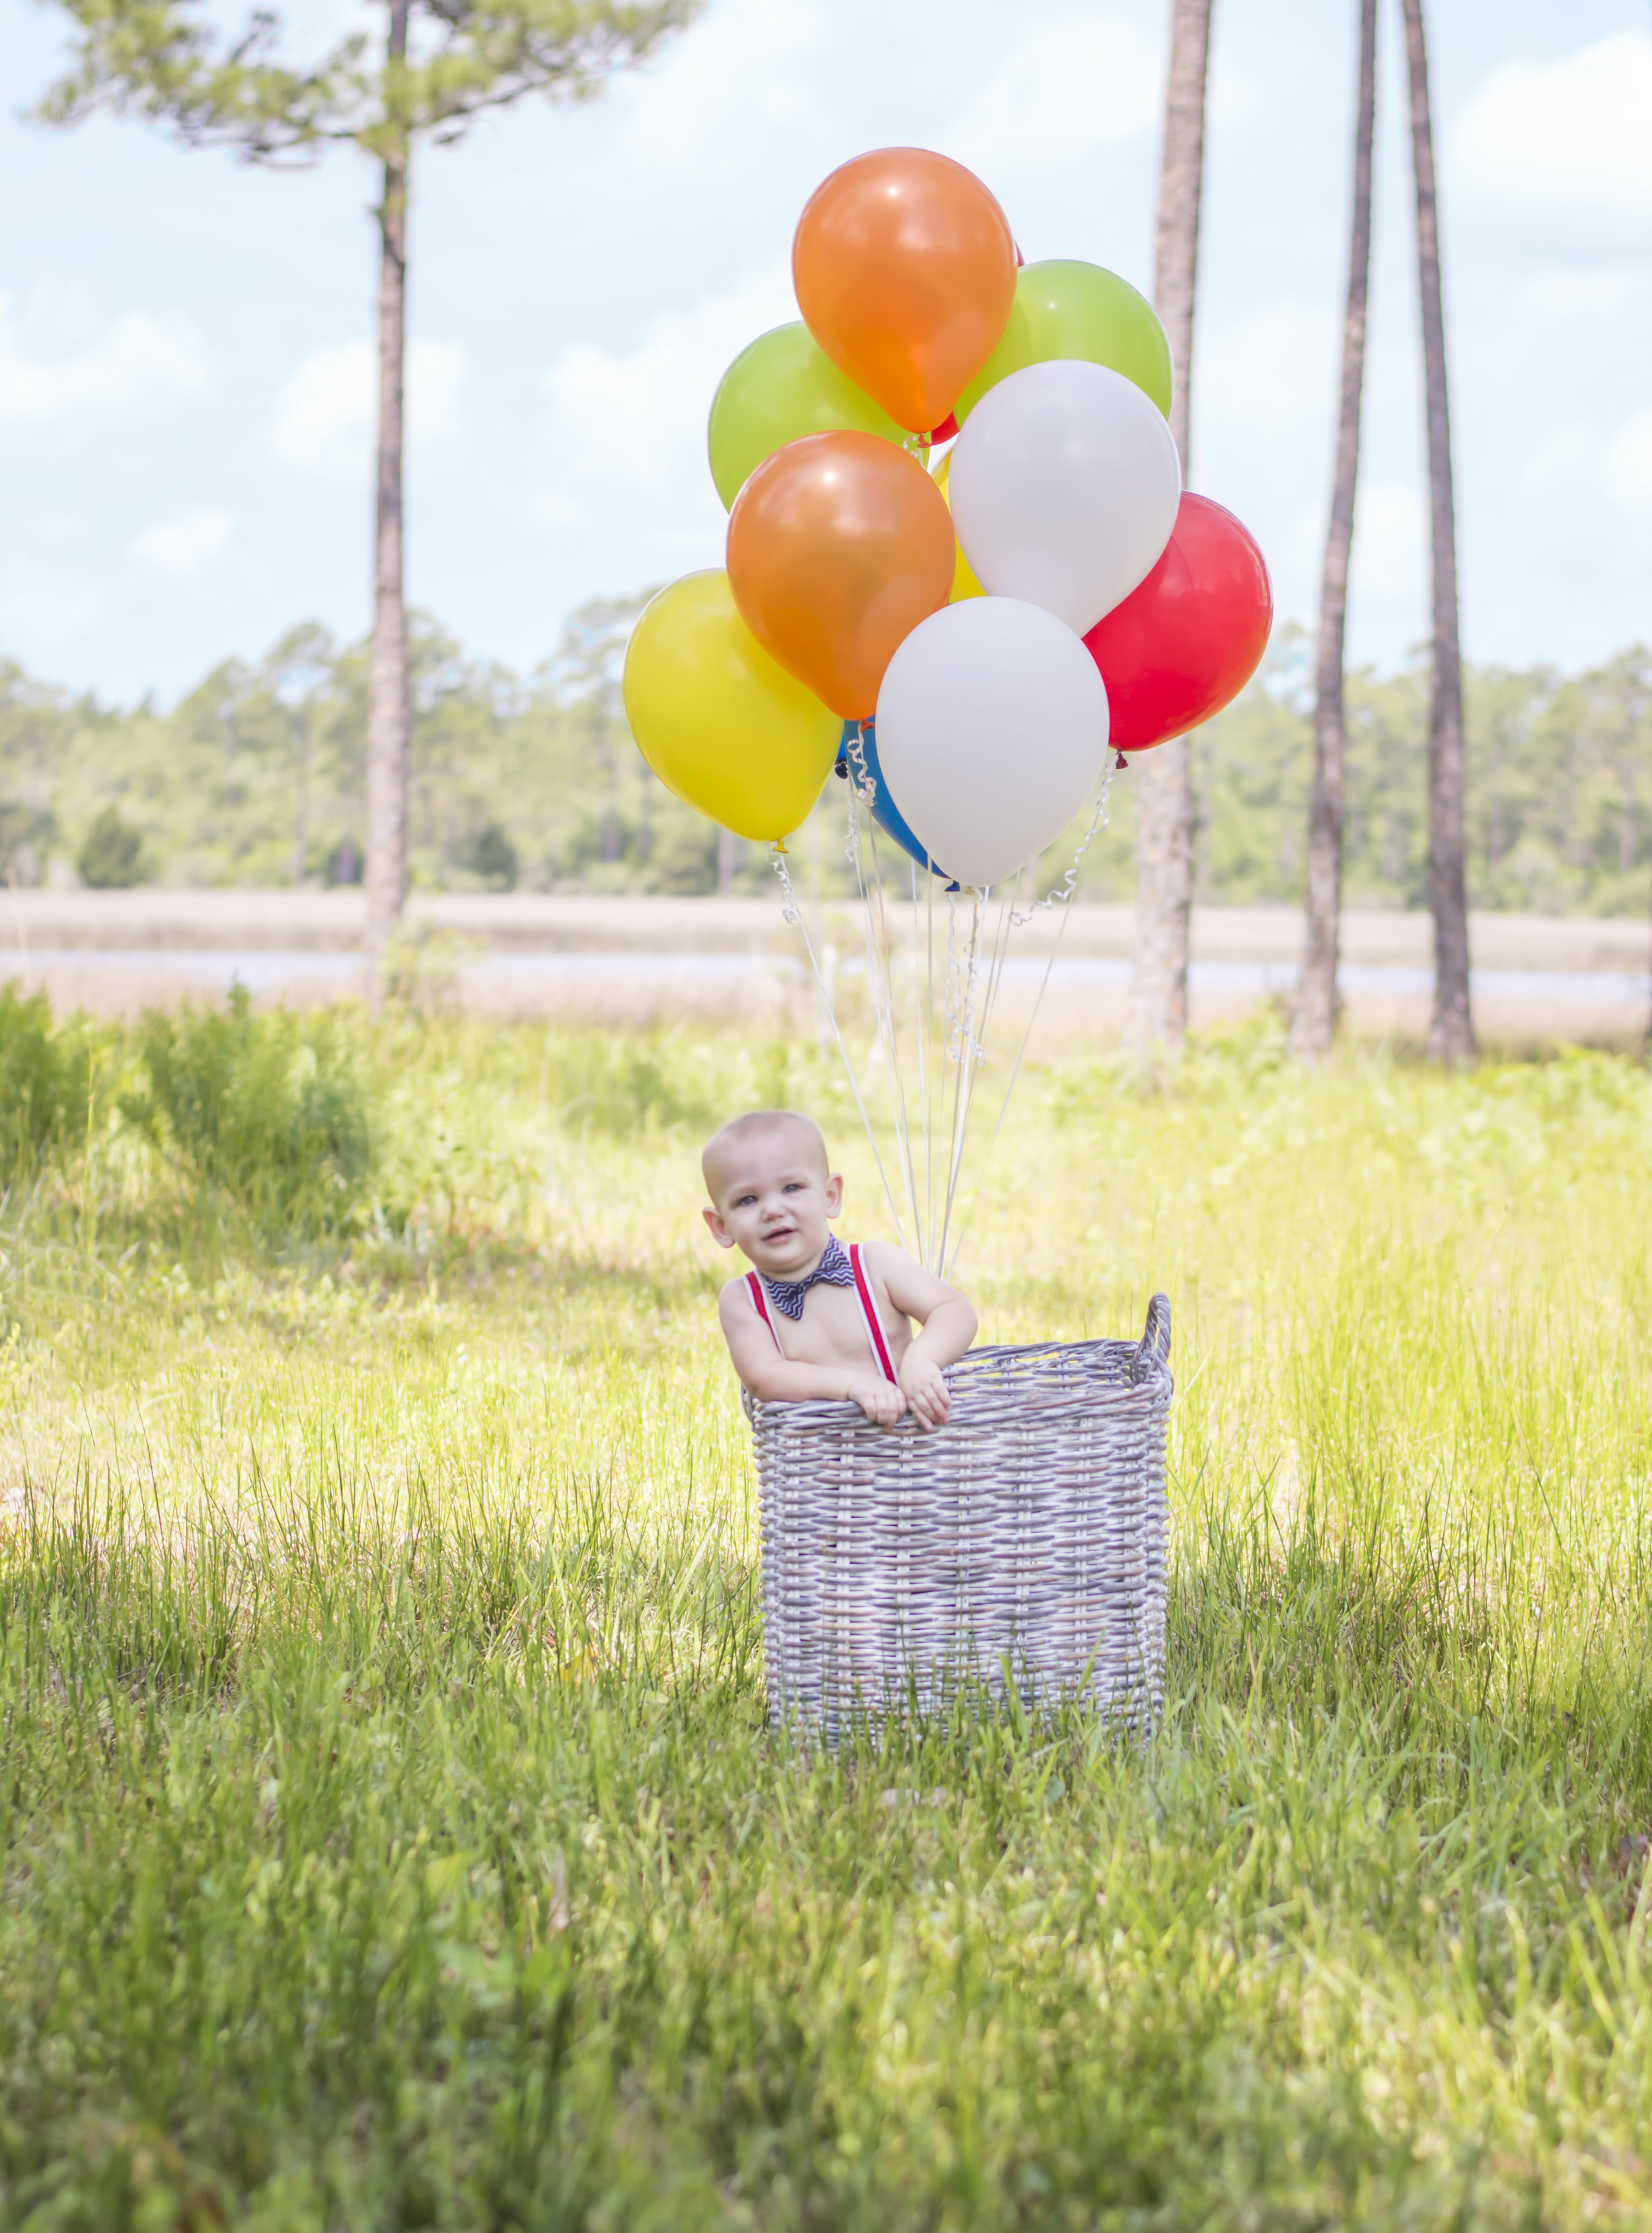 Little Boy in Basket with Balloons Portrait